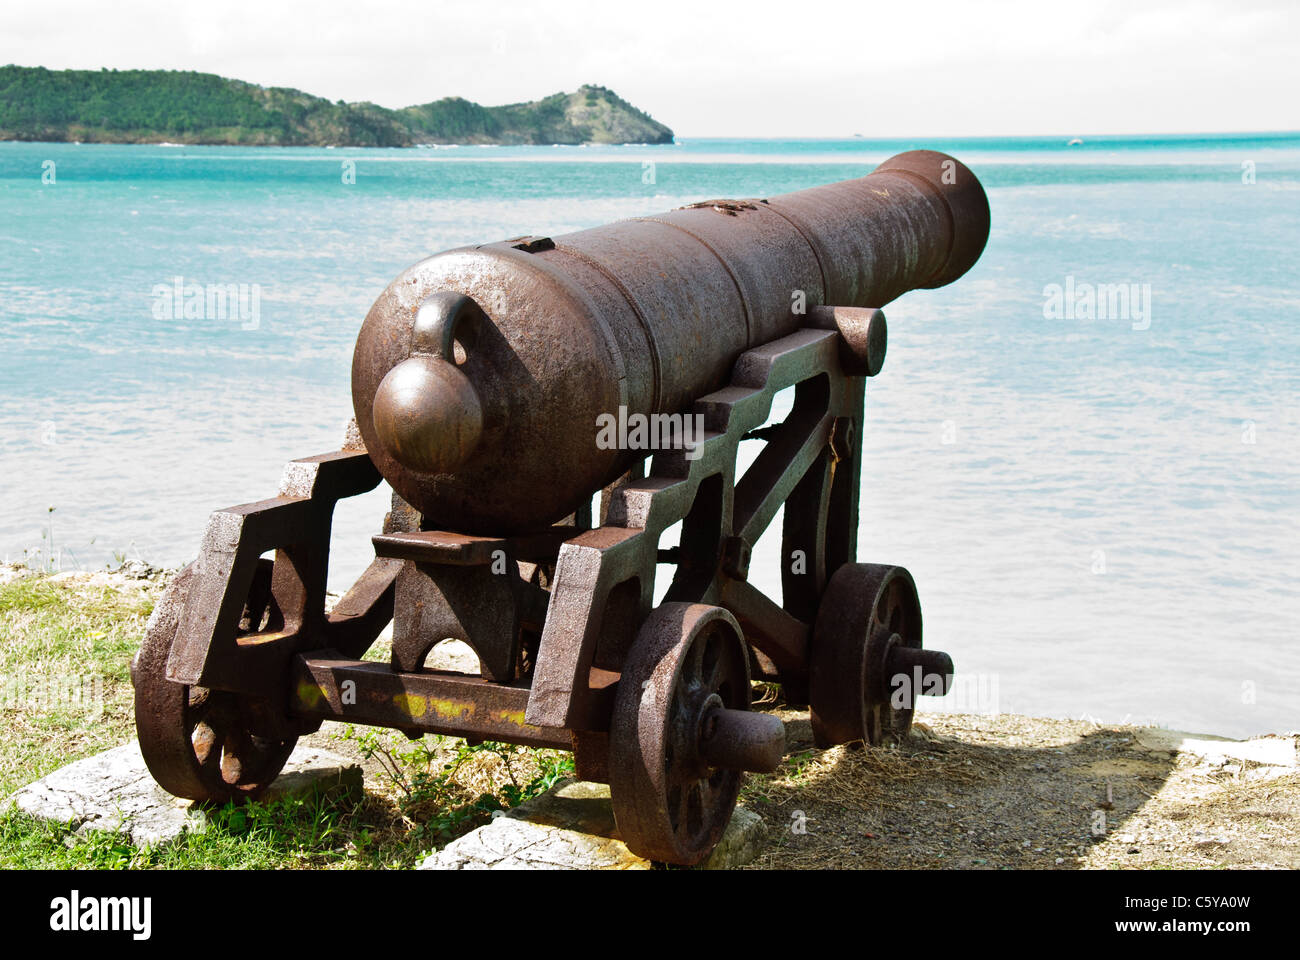 Cannon overlooking St John's Harbor from Fort James, Antigua - Stock Image